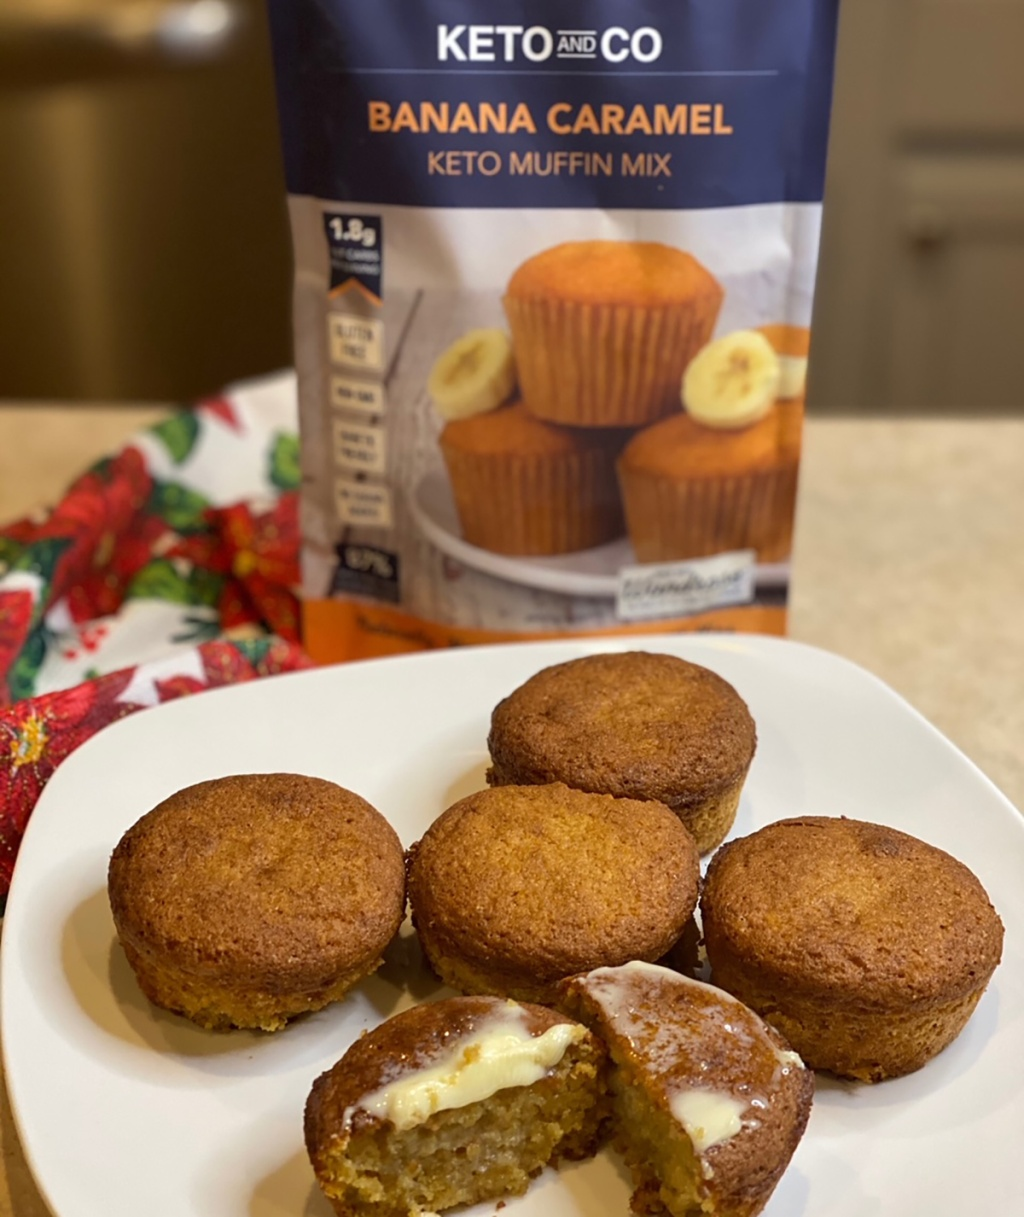 plate with keto and co banana caramel muffins